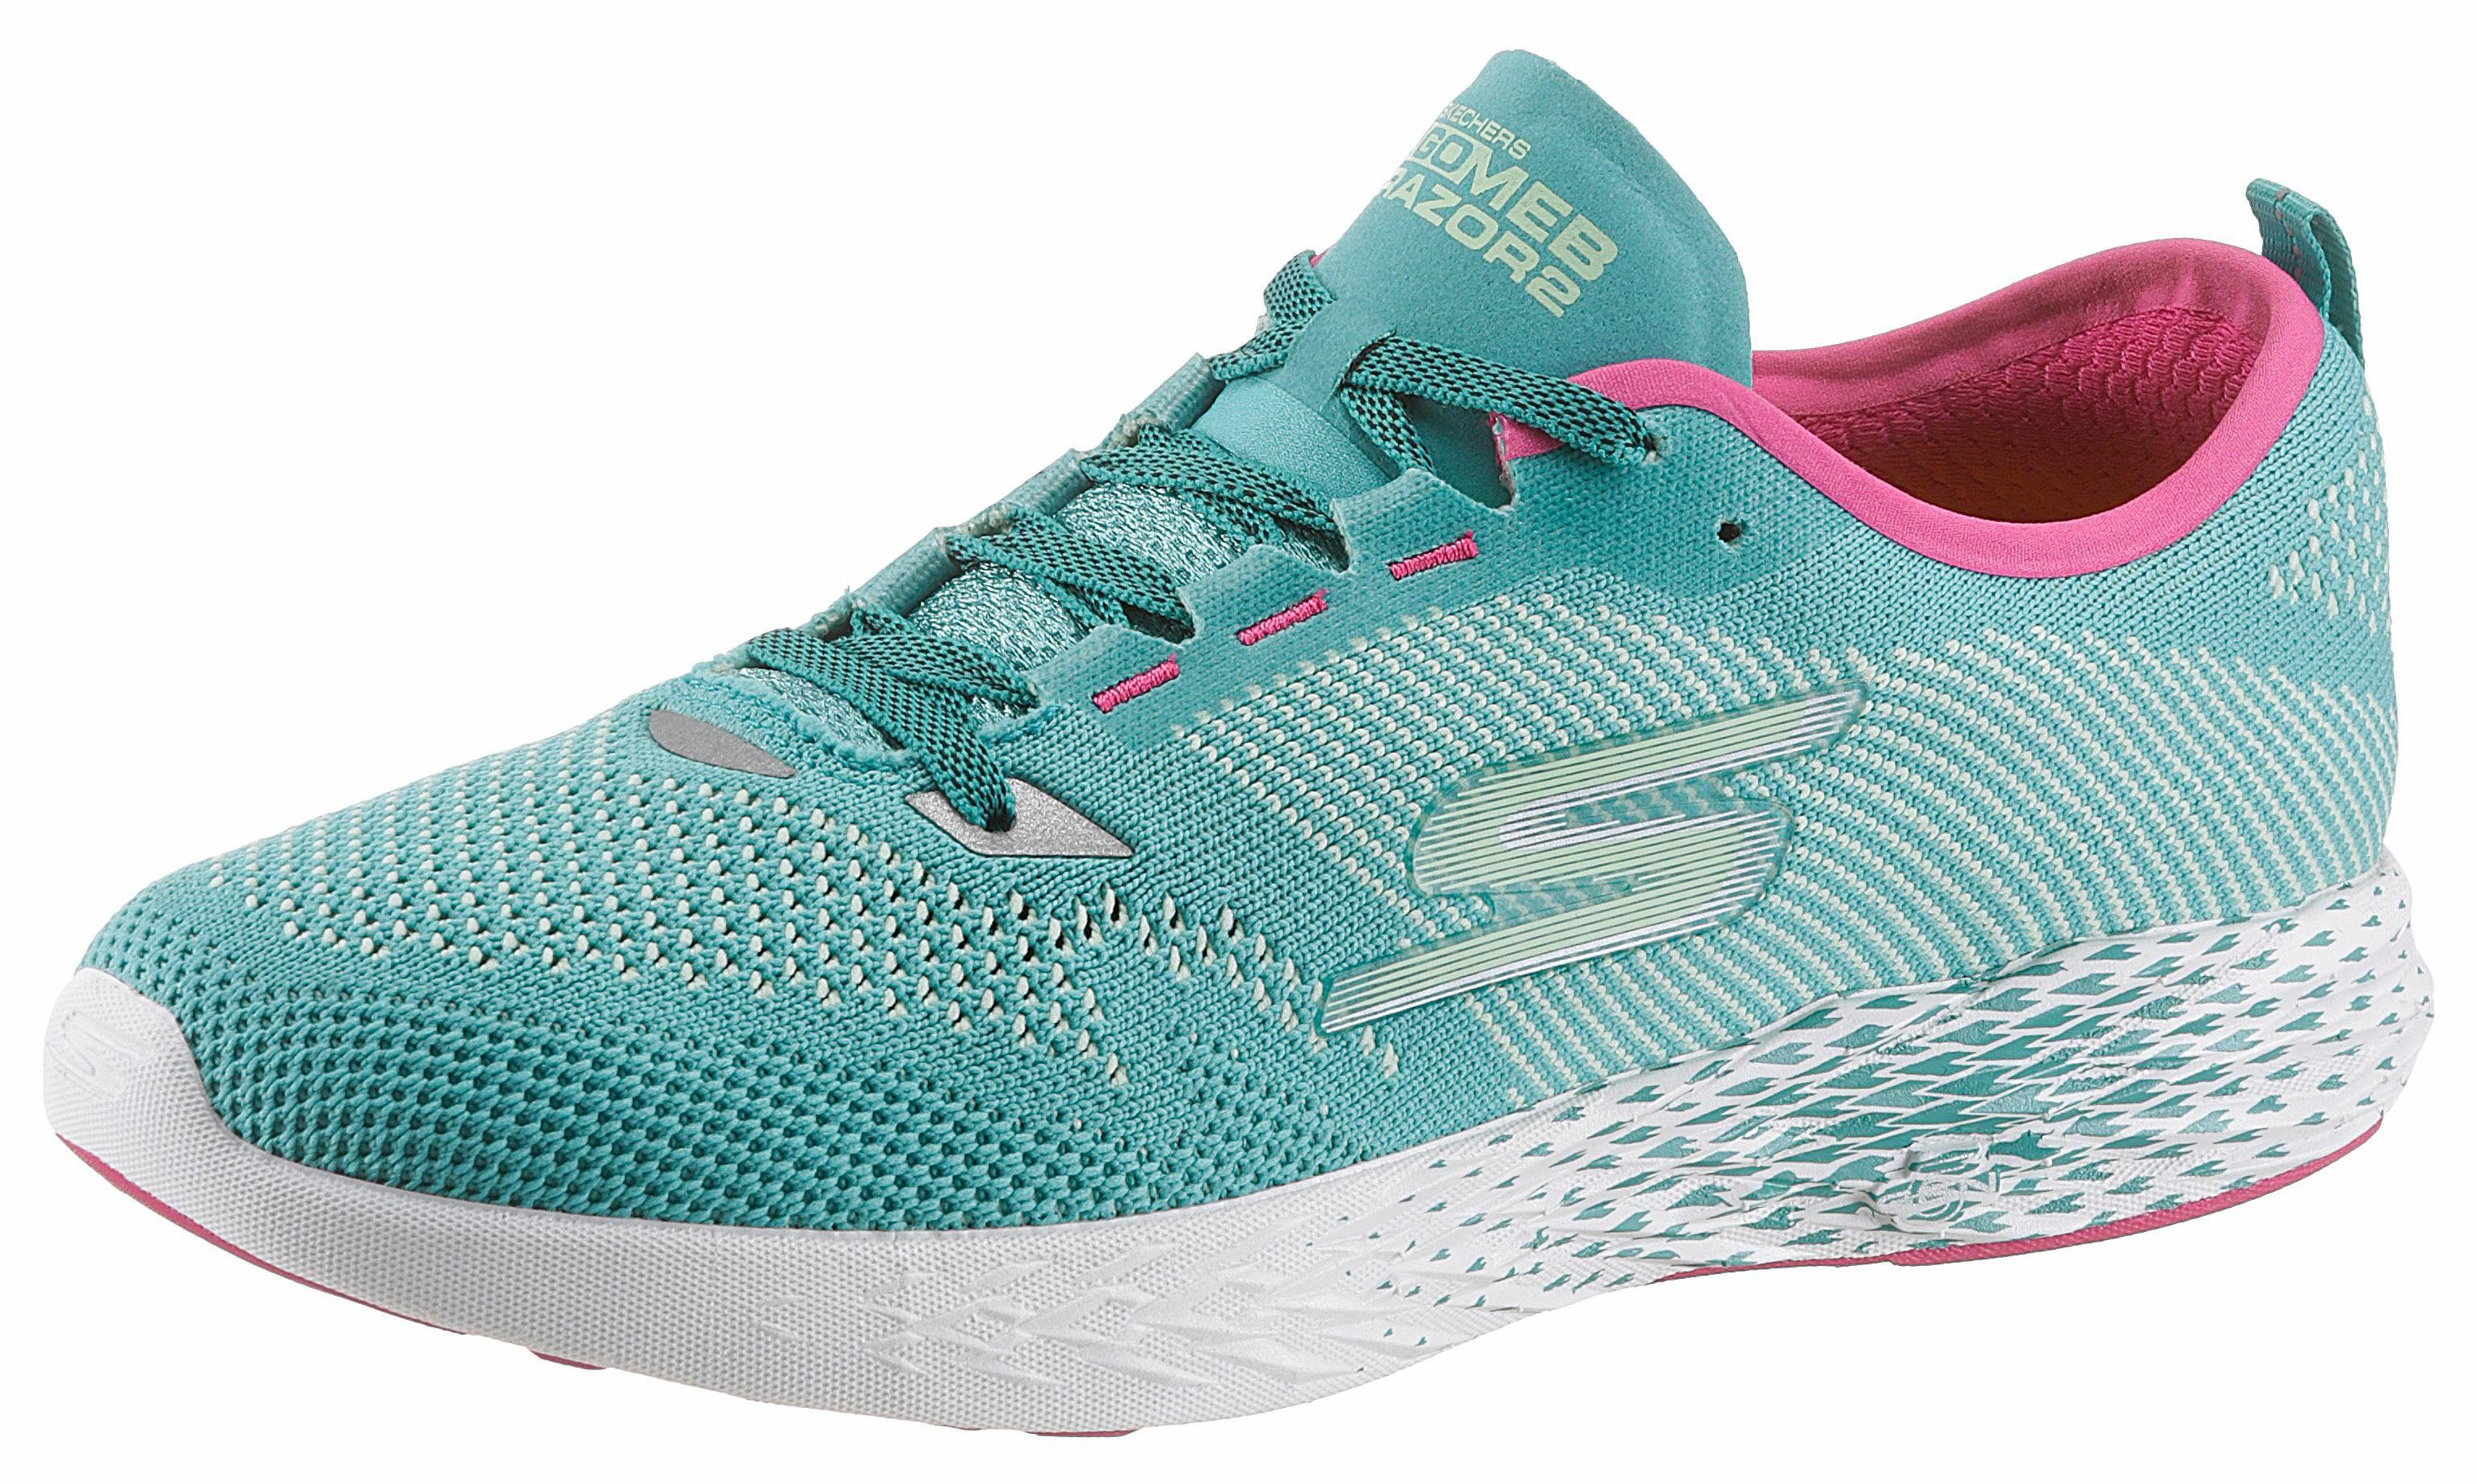 SKECHERS PERFORMANCE Go Meb Razor 2 Sneaker, in Strick-Optik online kaufen  türkis-pink